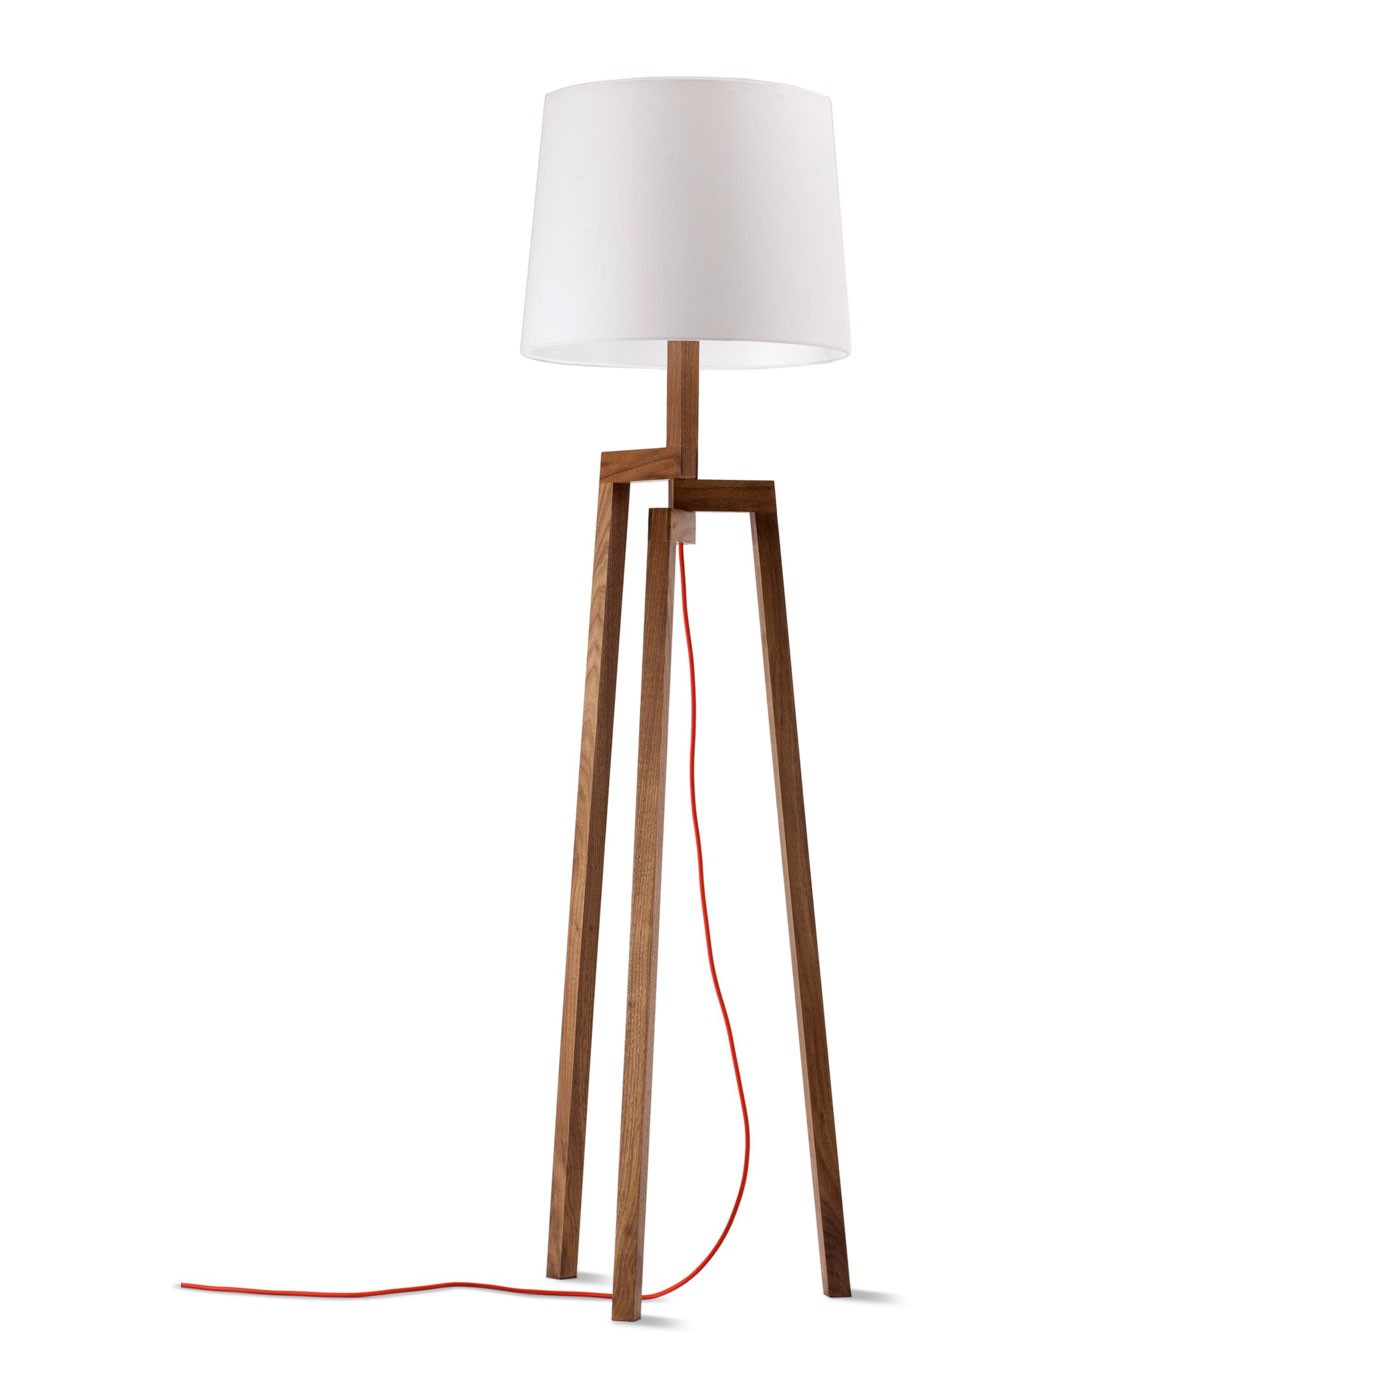 Lamp Design Modern Floor Lamps Sleek And Elegant Styles Inoutinterior